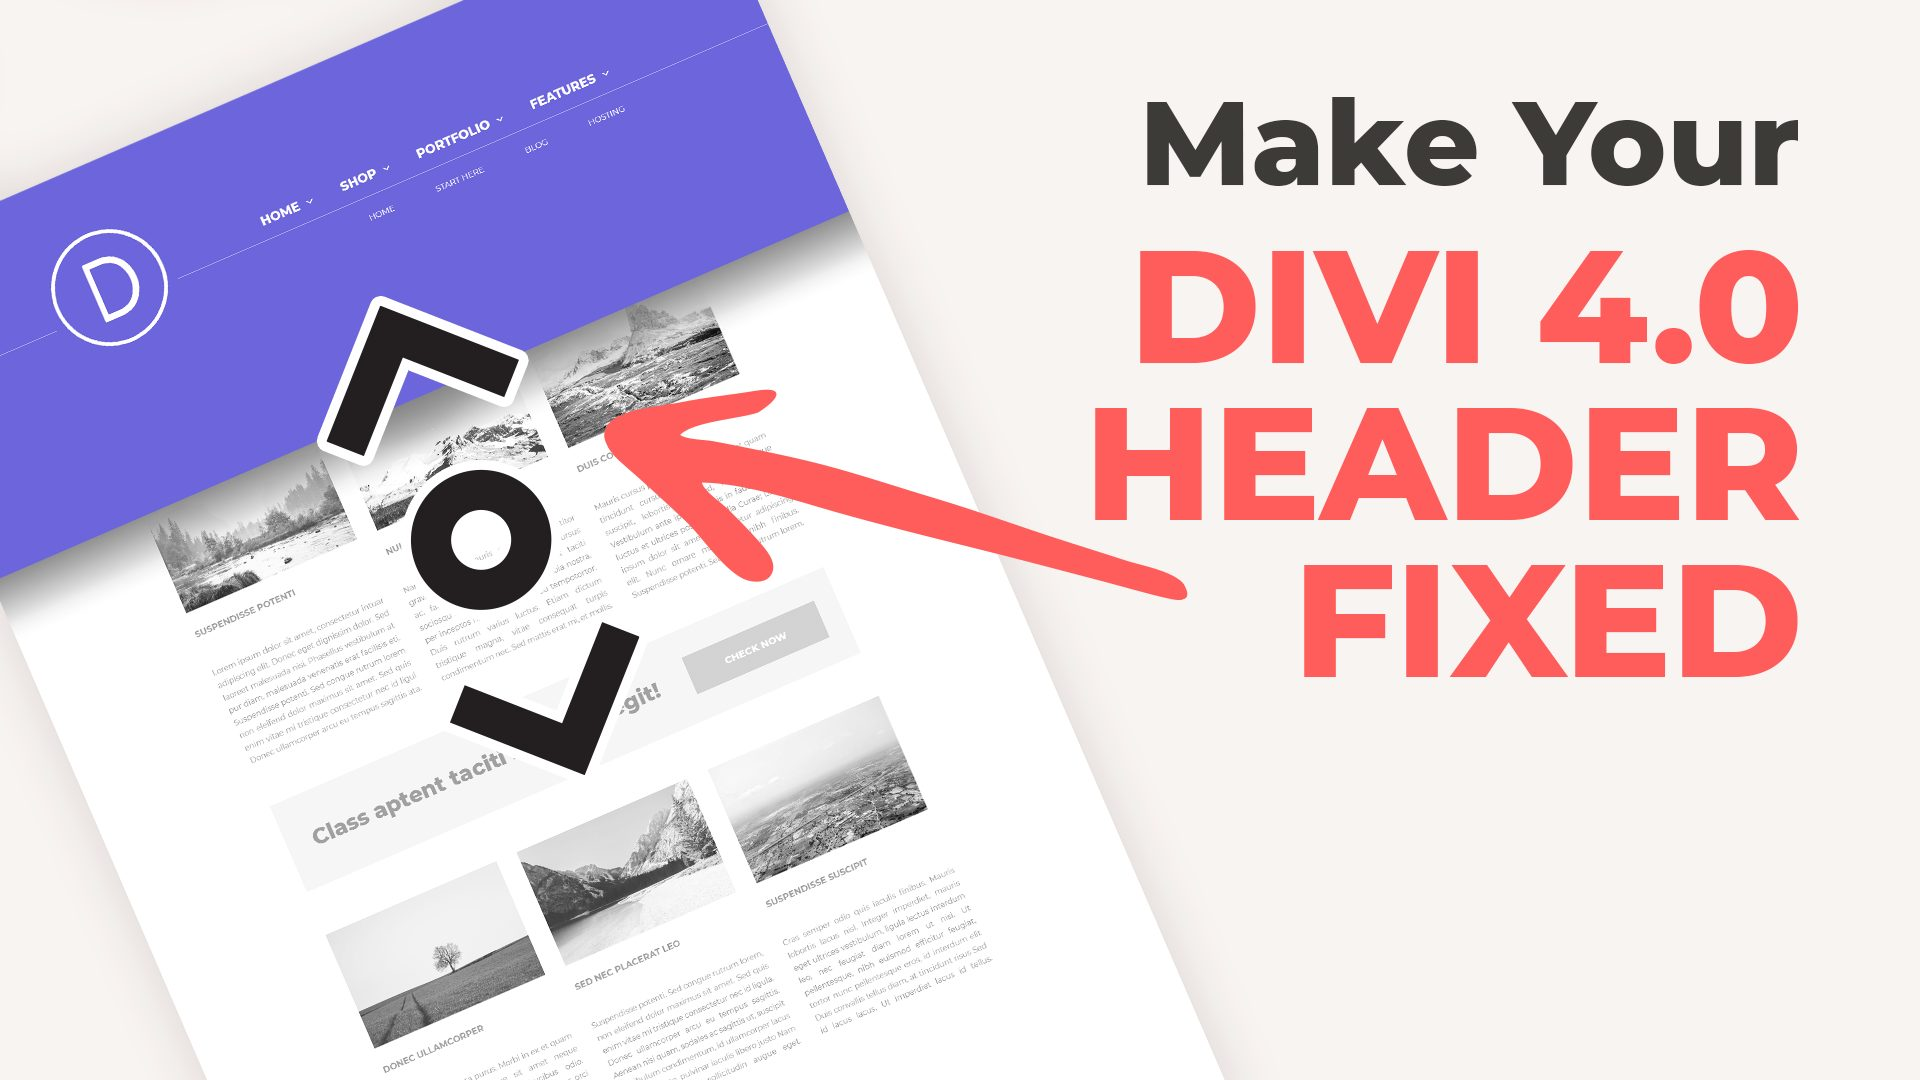 Make Divi 4.0 Header Sticky or Fixed on the Scroll